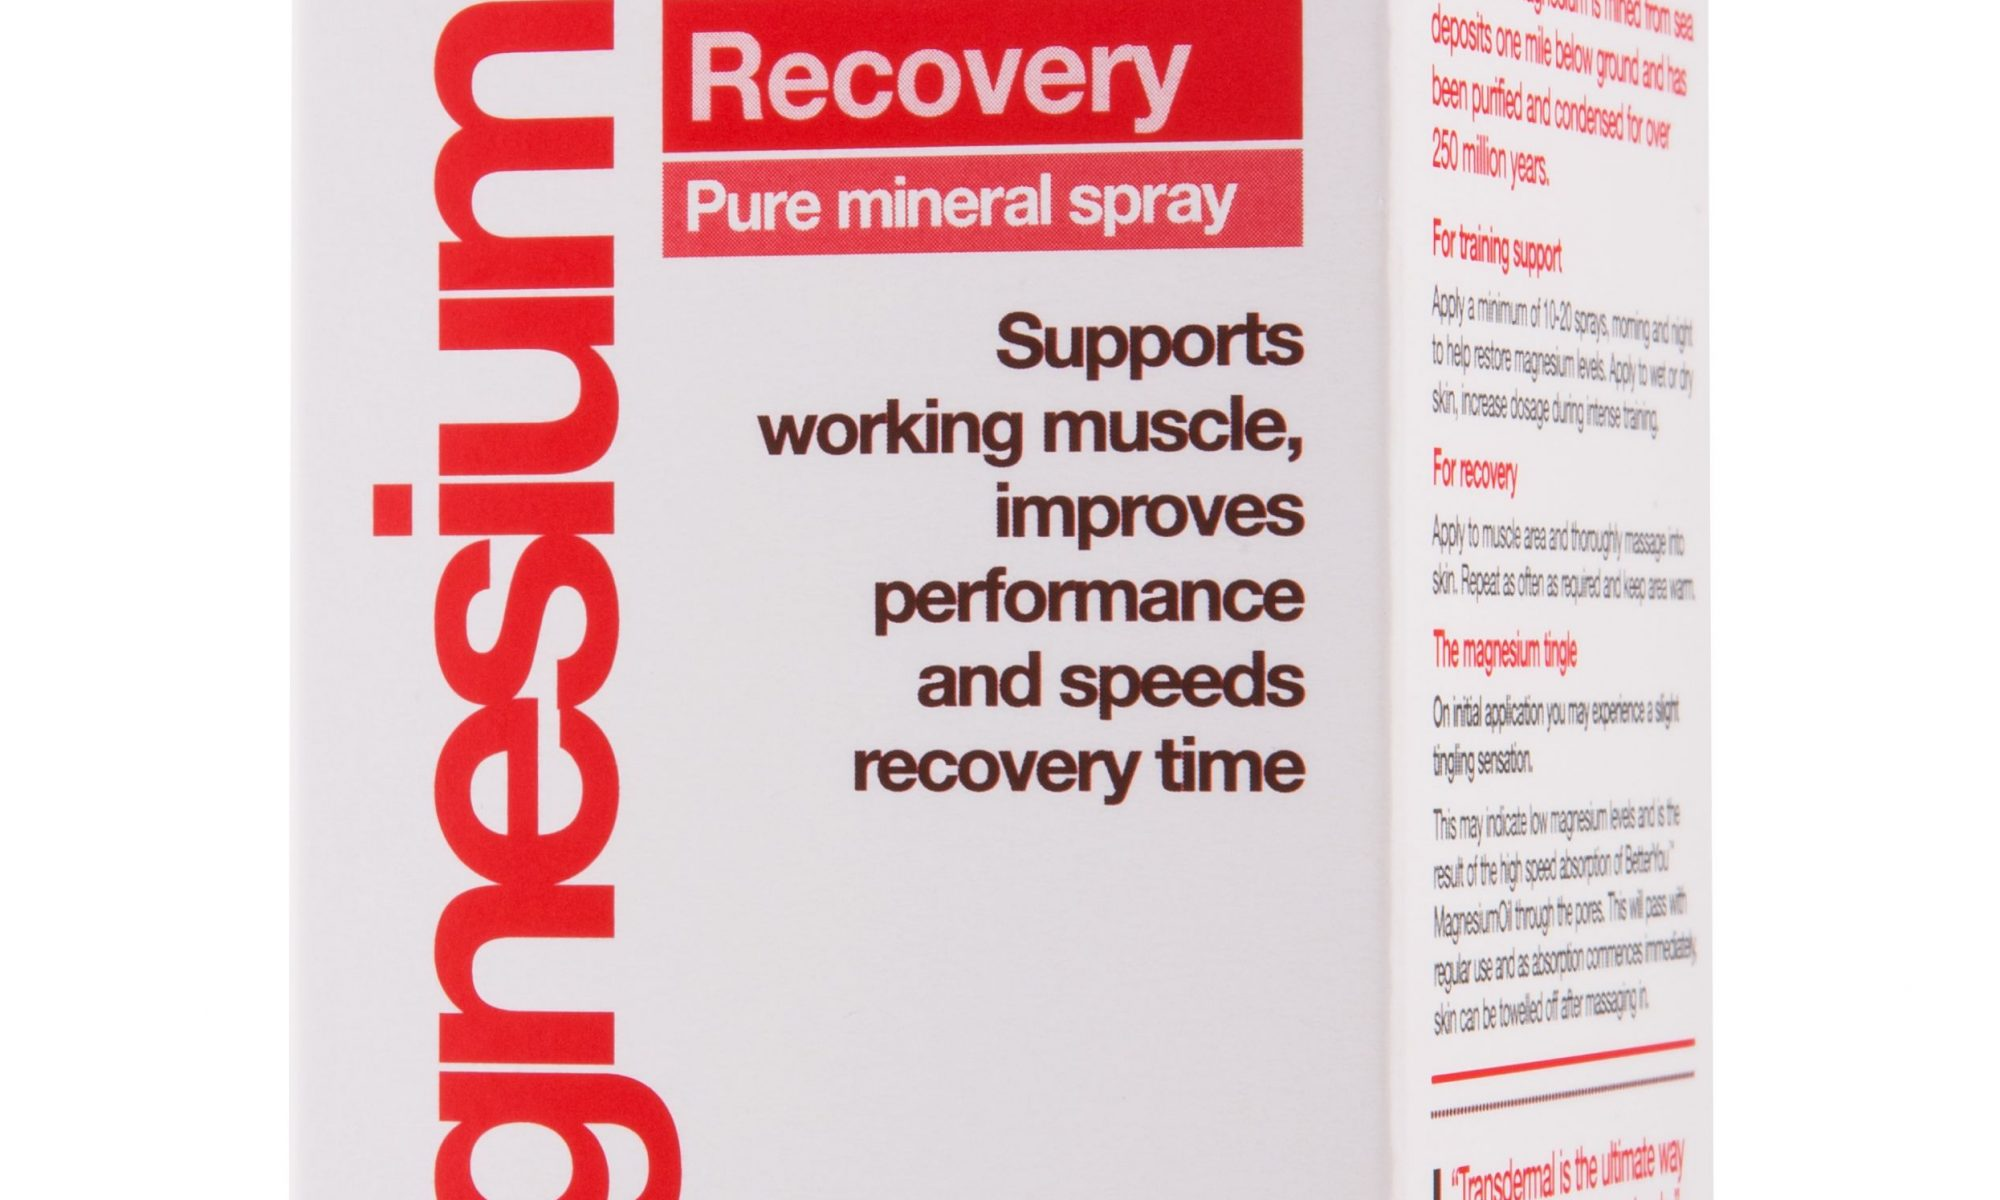 recovery oil spray